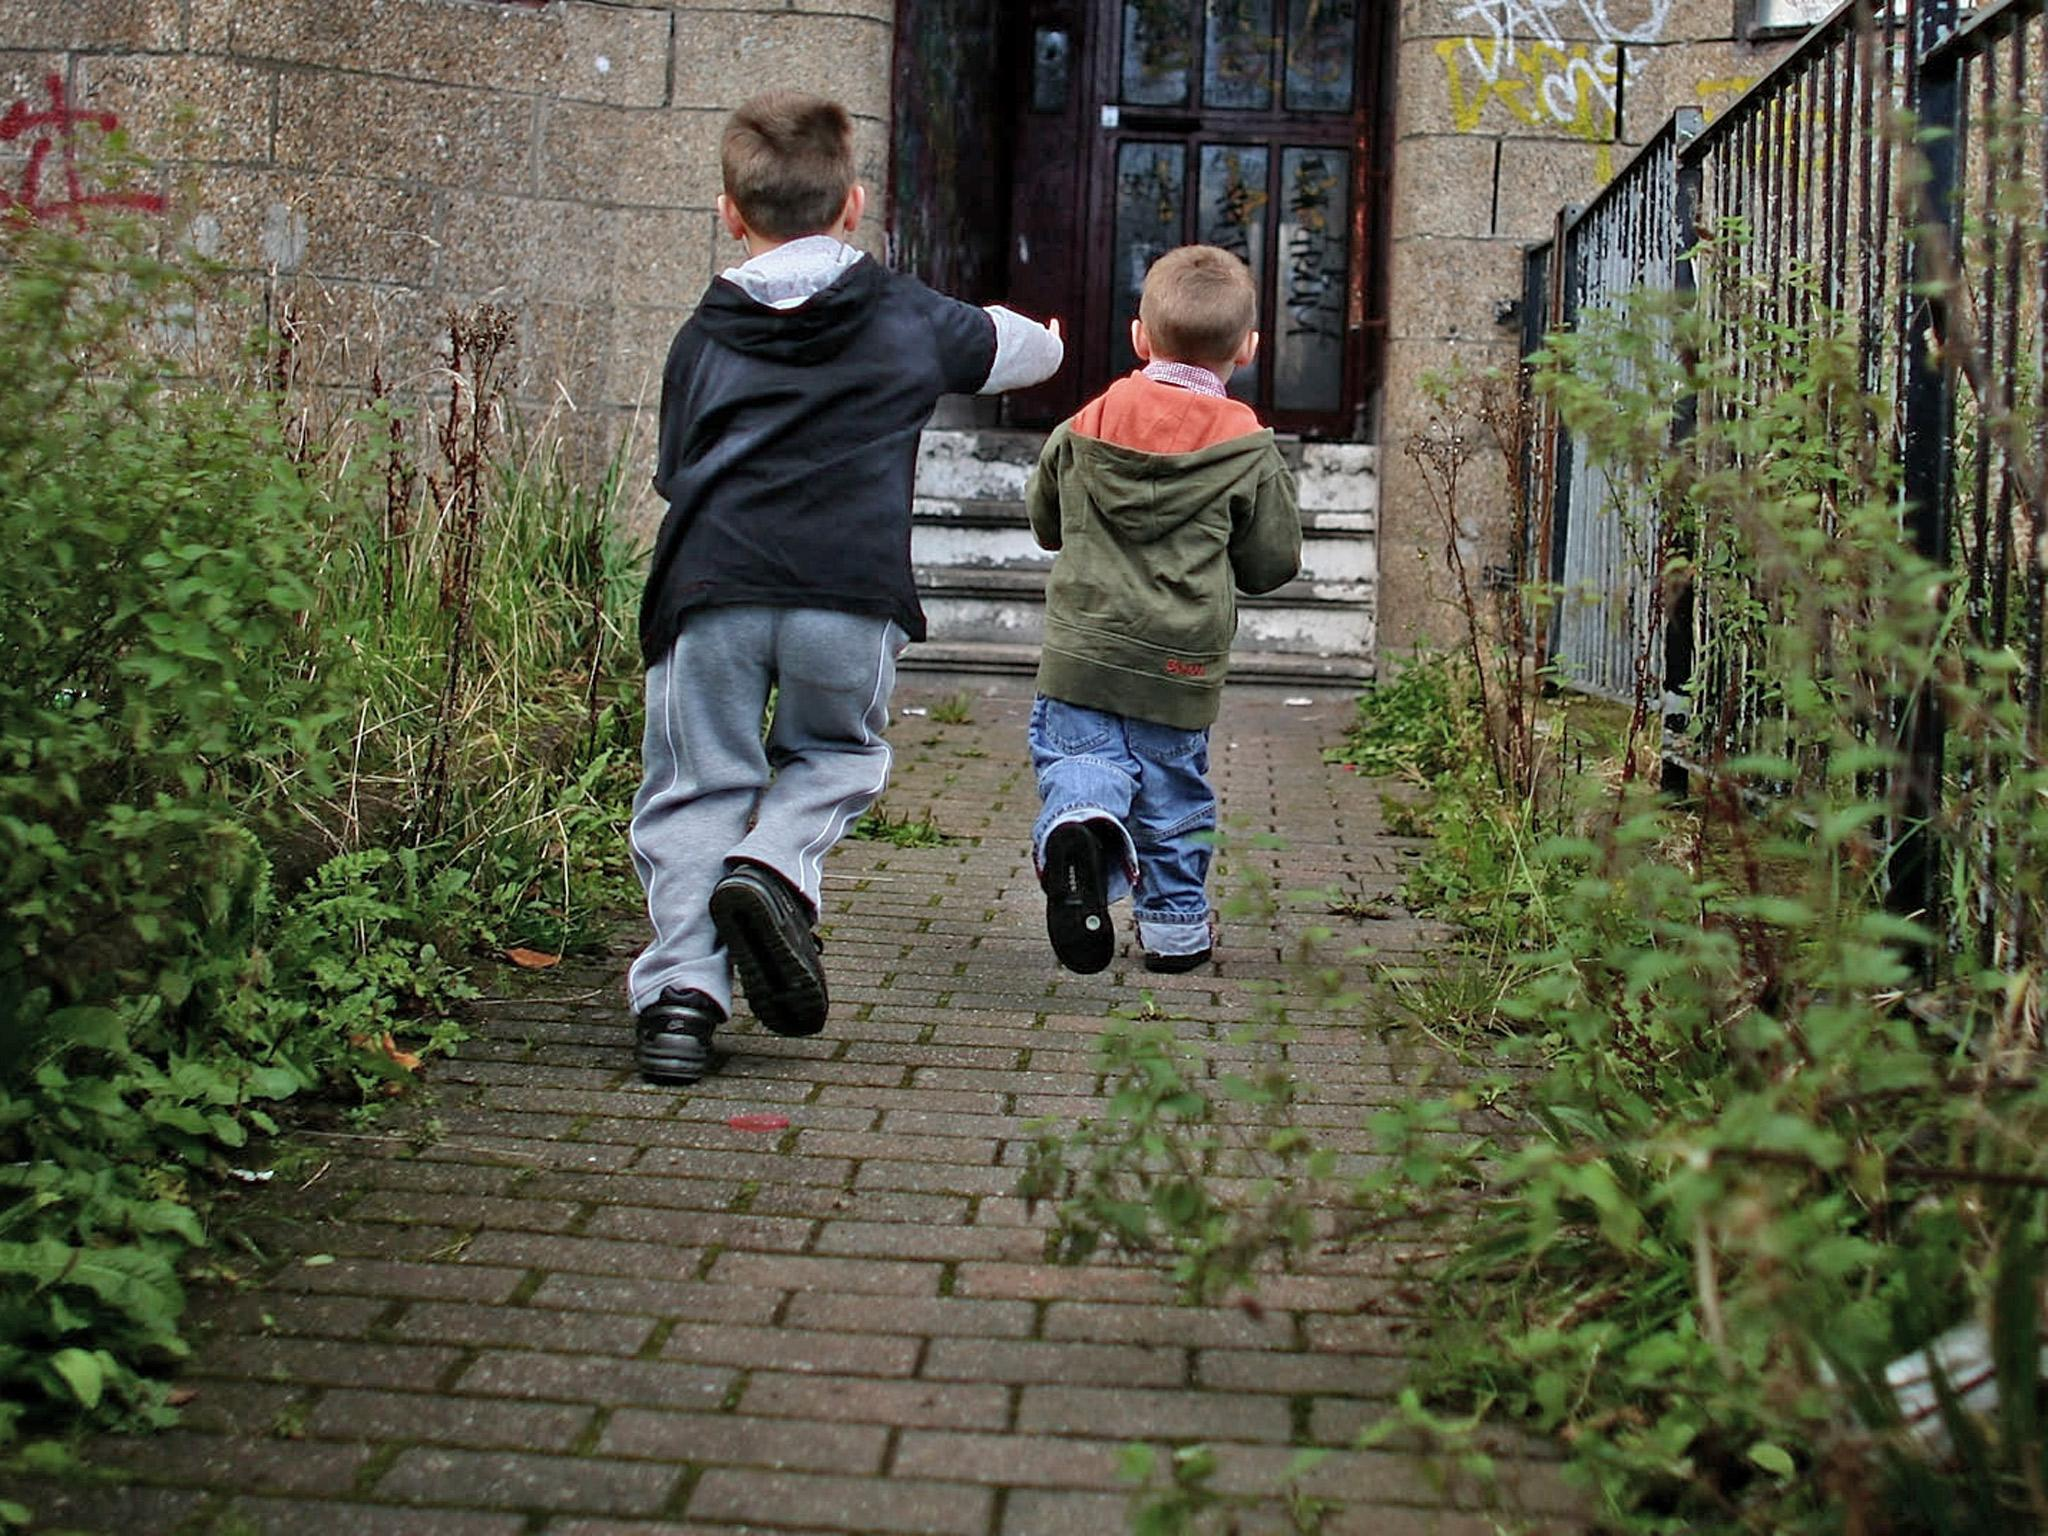 One in three children of working single parents live in poverty, warns charity